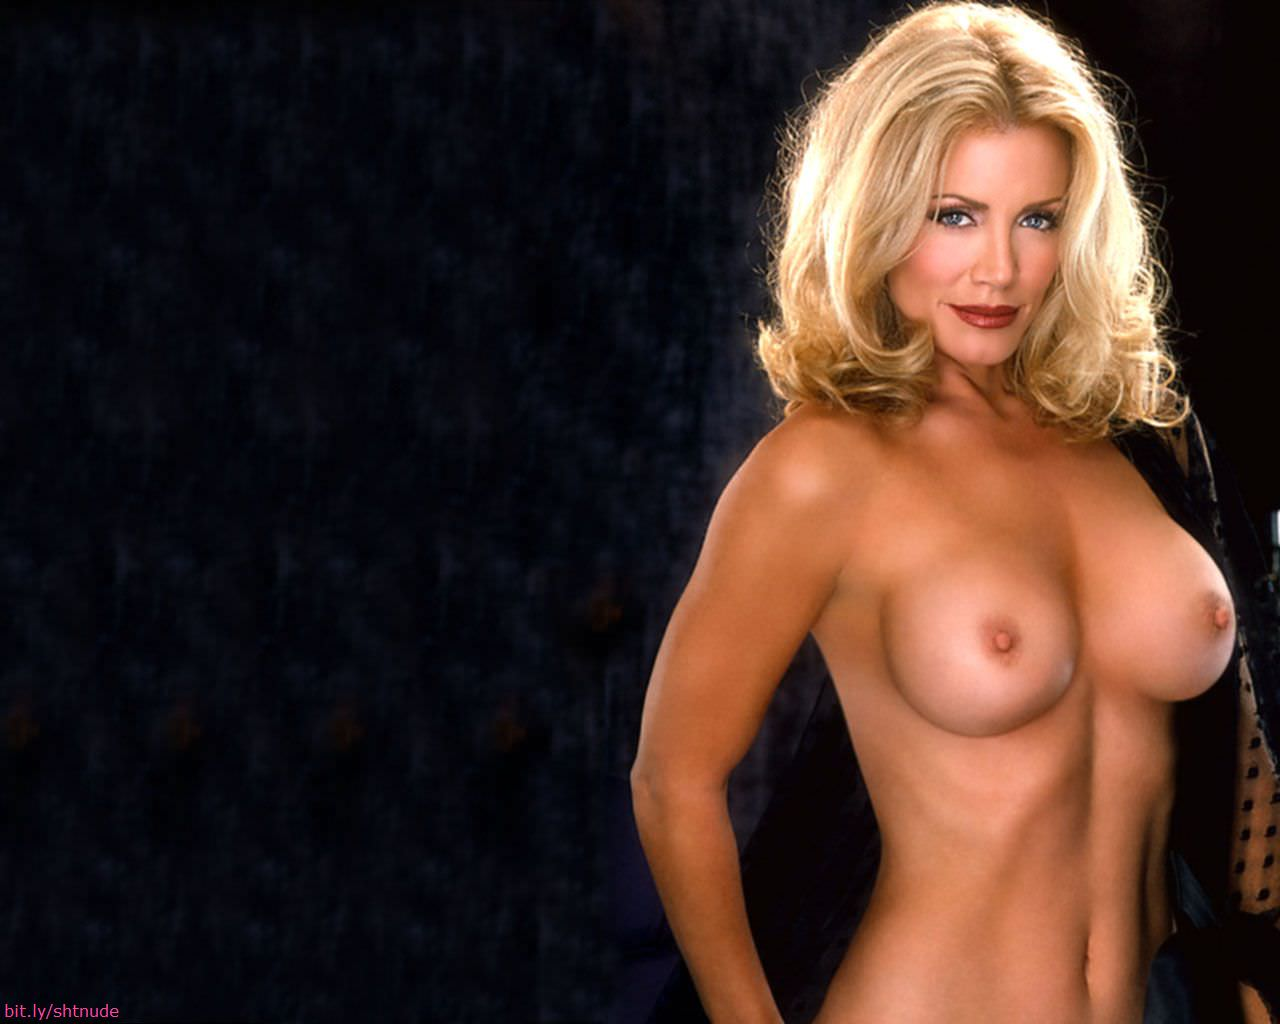 Your place Shannon tweed pornol photos topic think